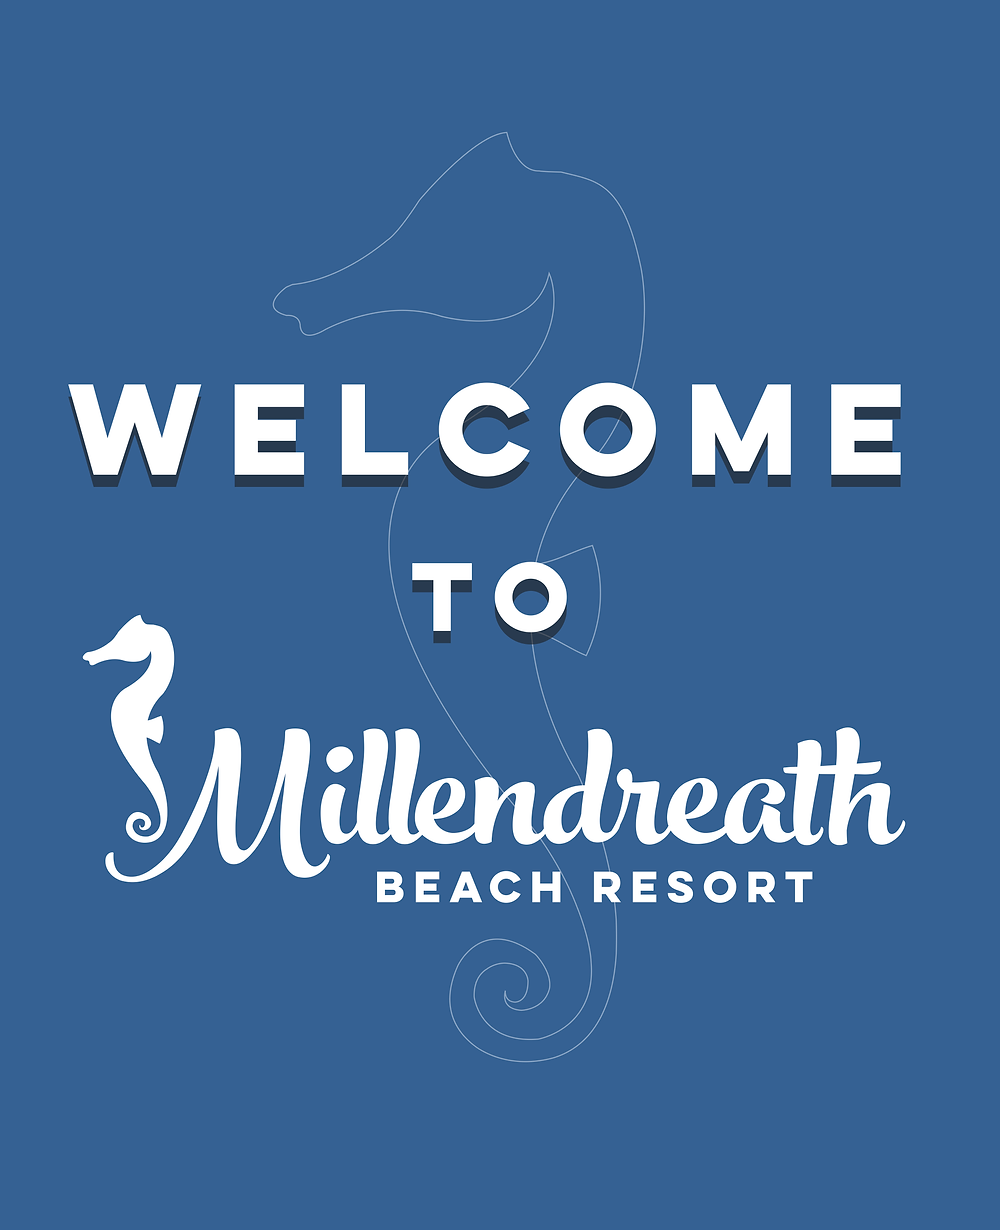 White text on blue background - Welcome to Millendreath Beach Resort